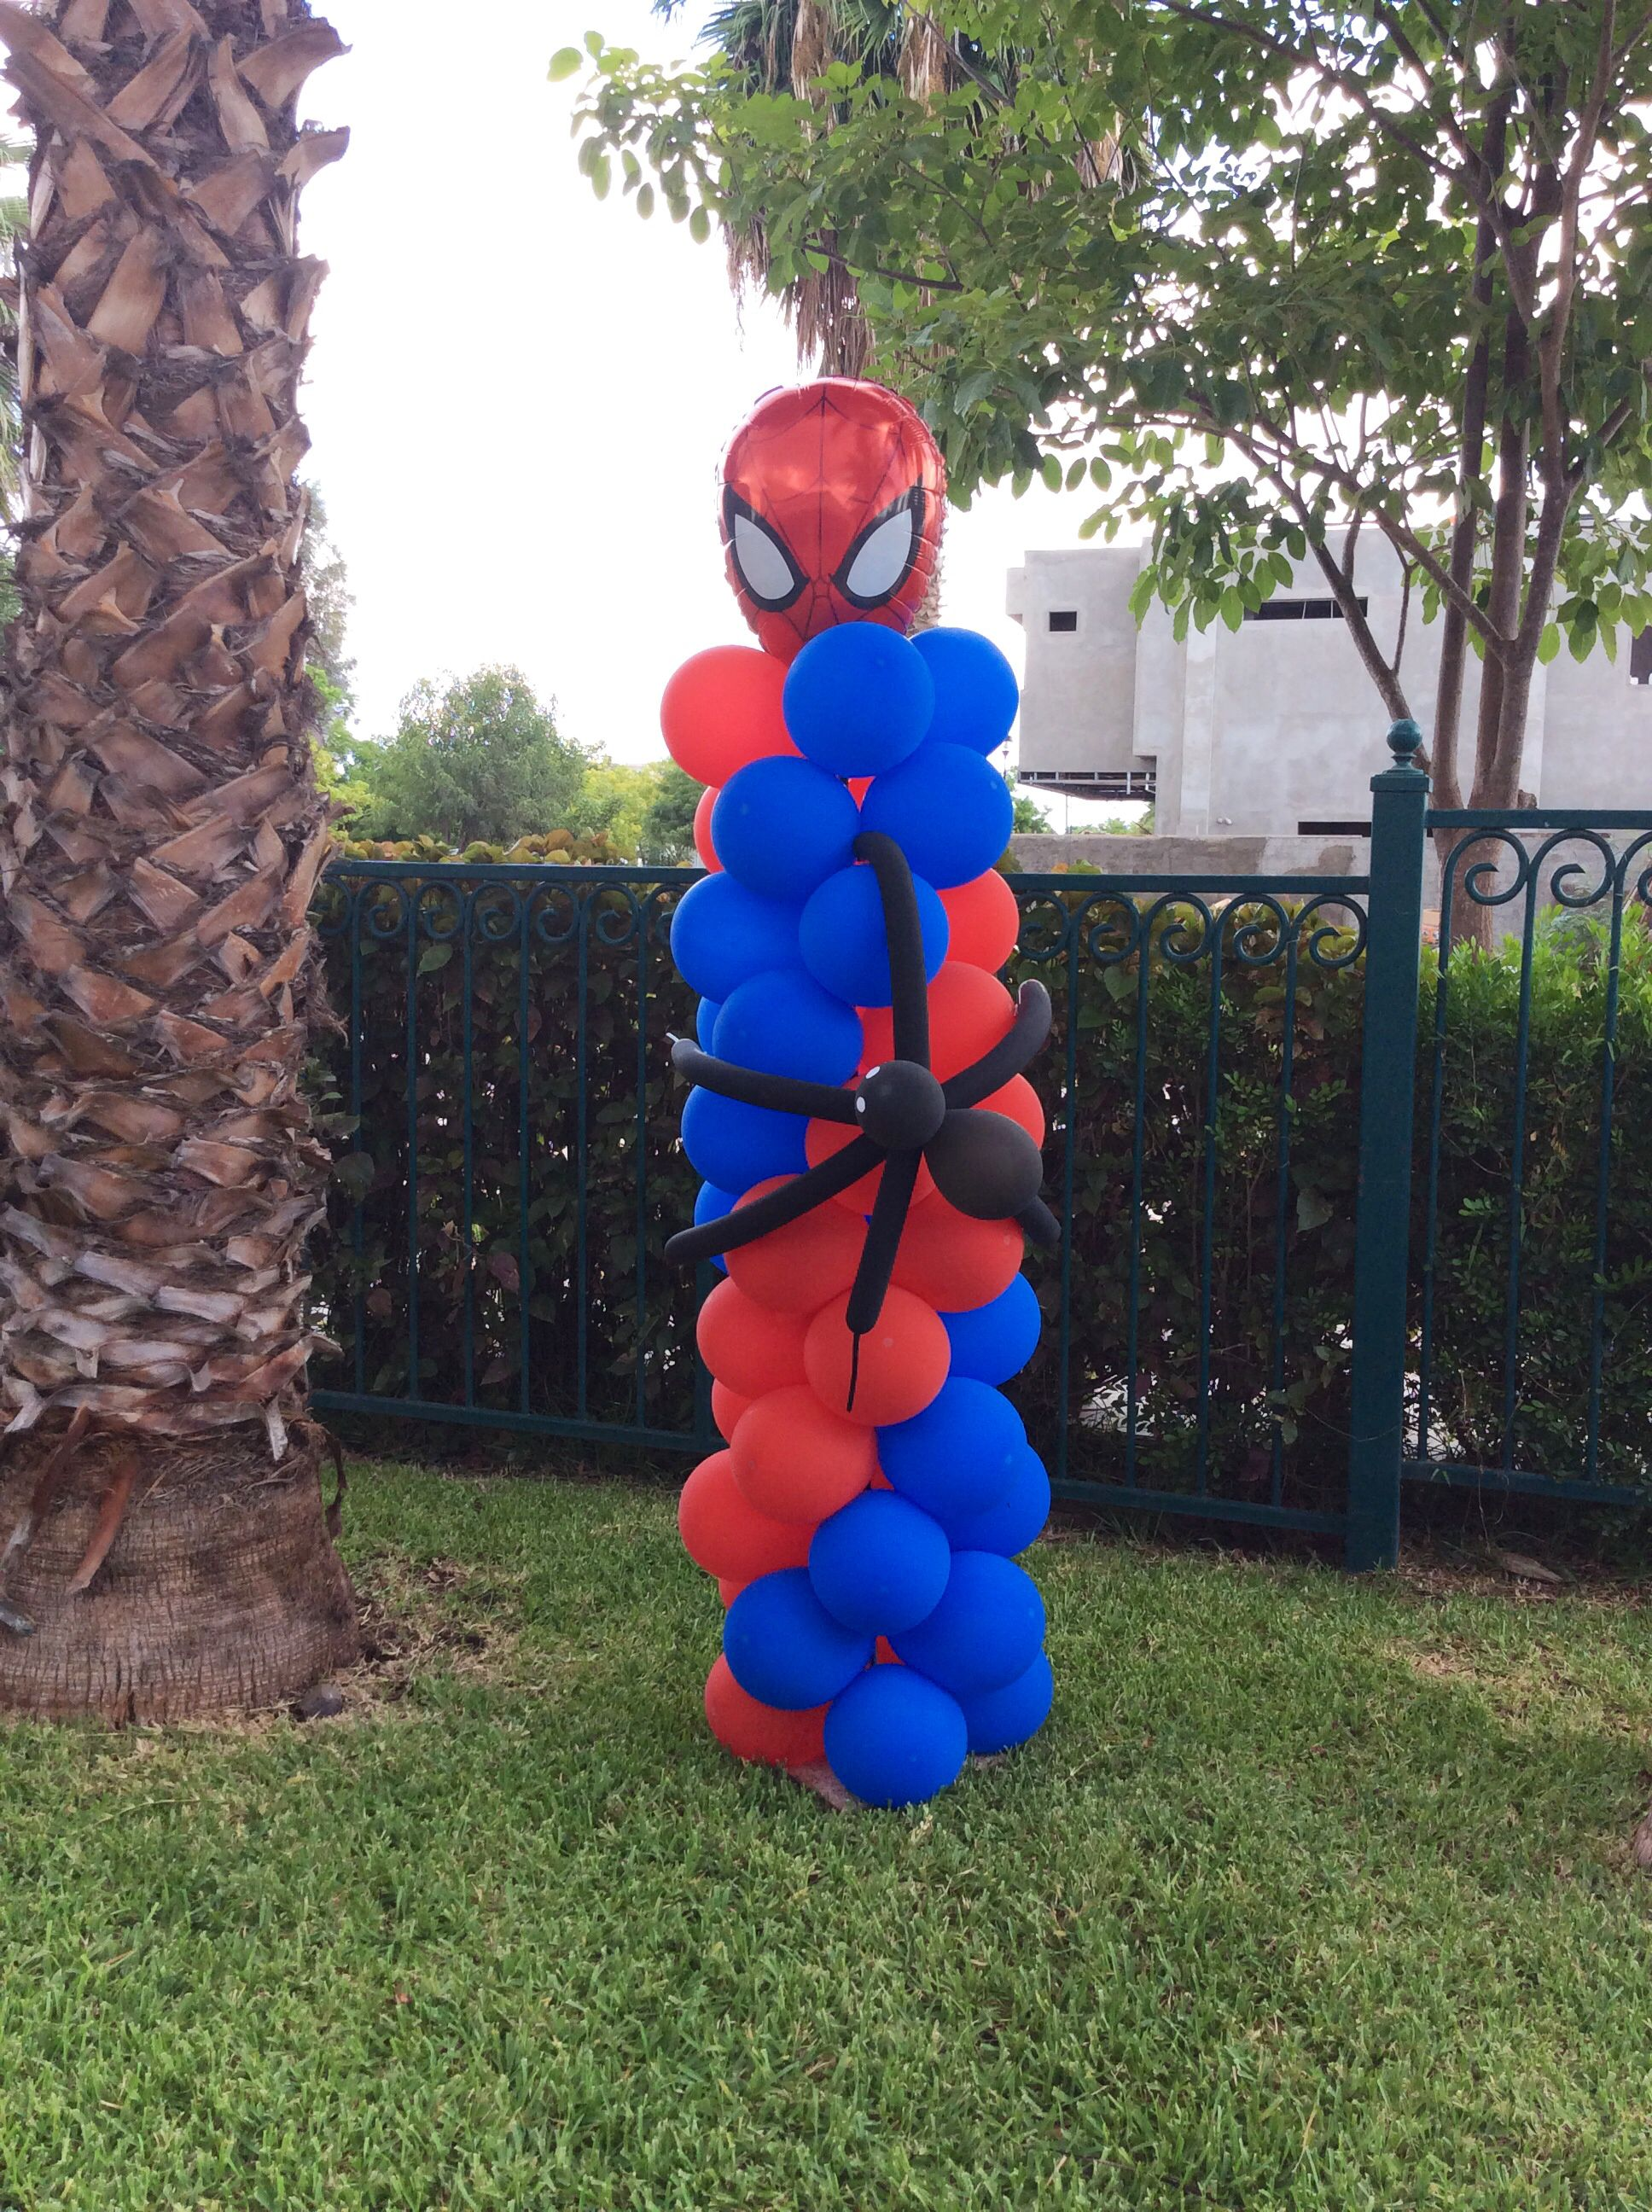 Pilar de spiderman por decoraci n eventos norma - Decoracion de aranas ...